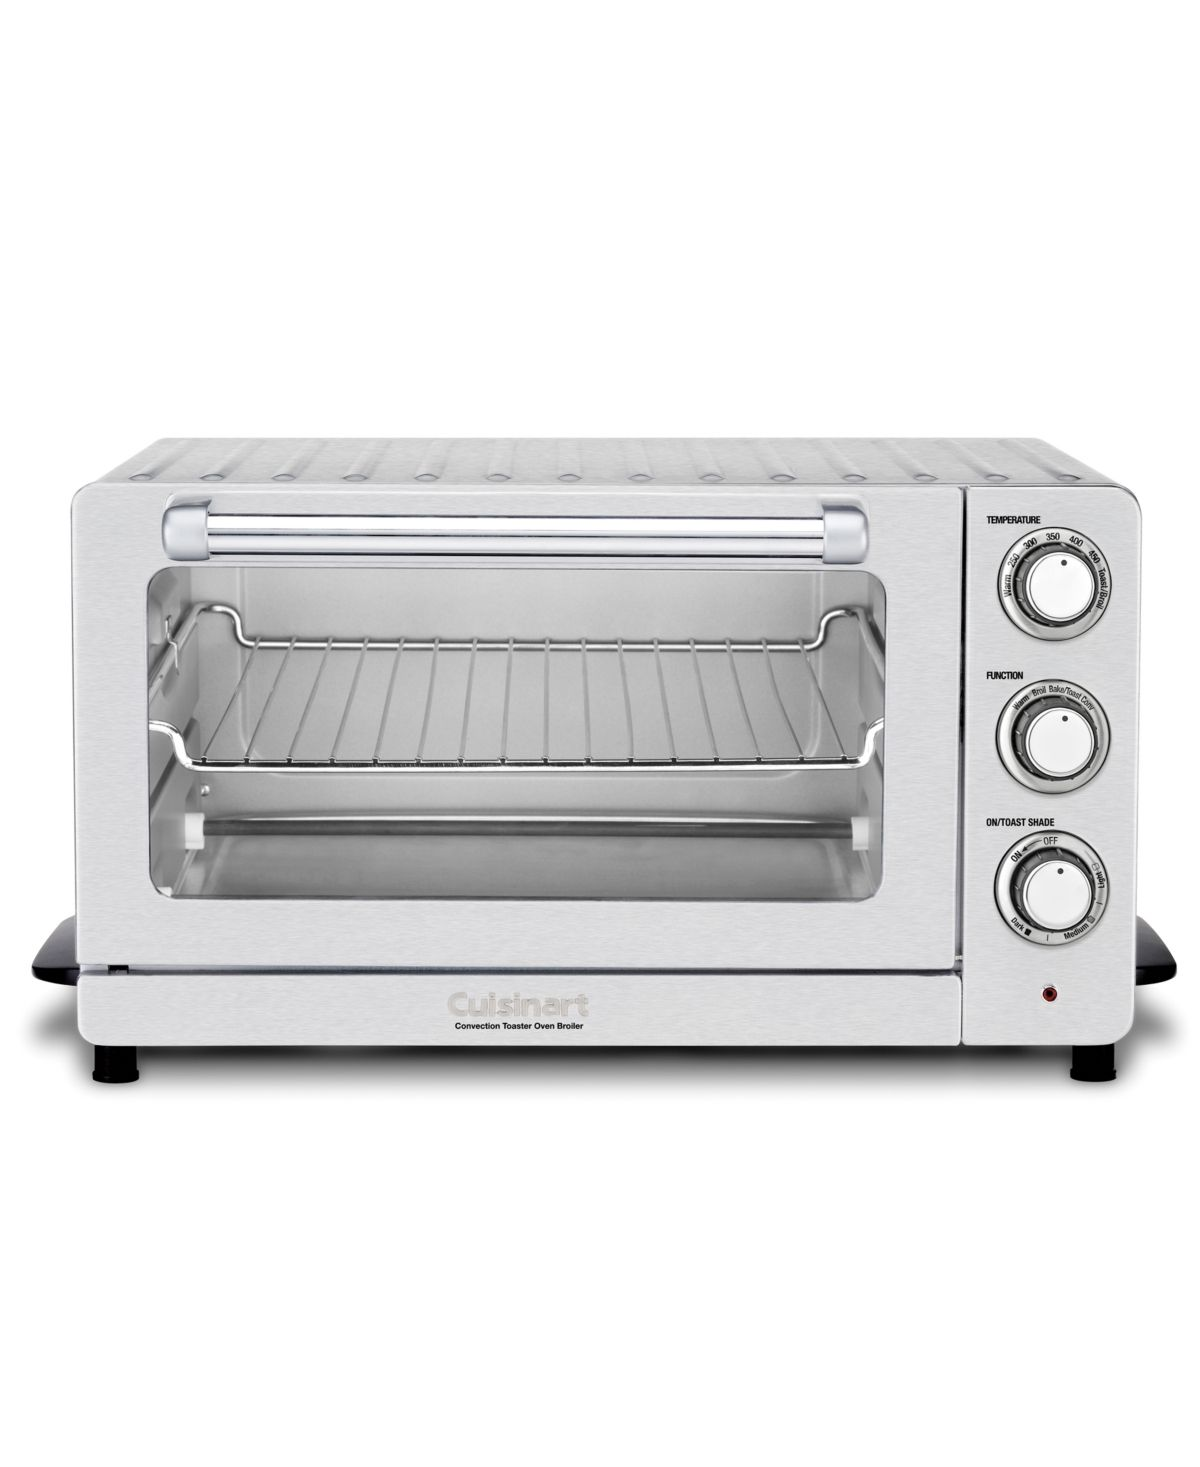 Cuisinart Tob 60n1 Toaster Oven Broiler Convection Reviews Small Appliances Kitchen Macy S Toaster Oven Convection Convection Oven